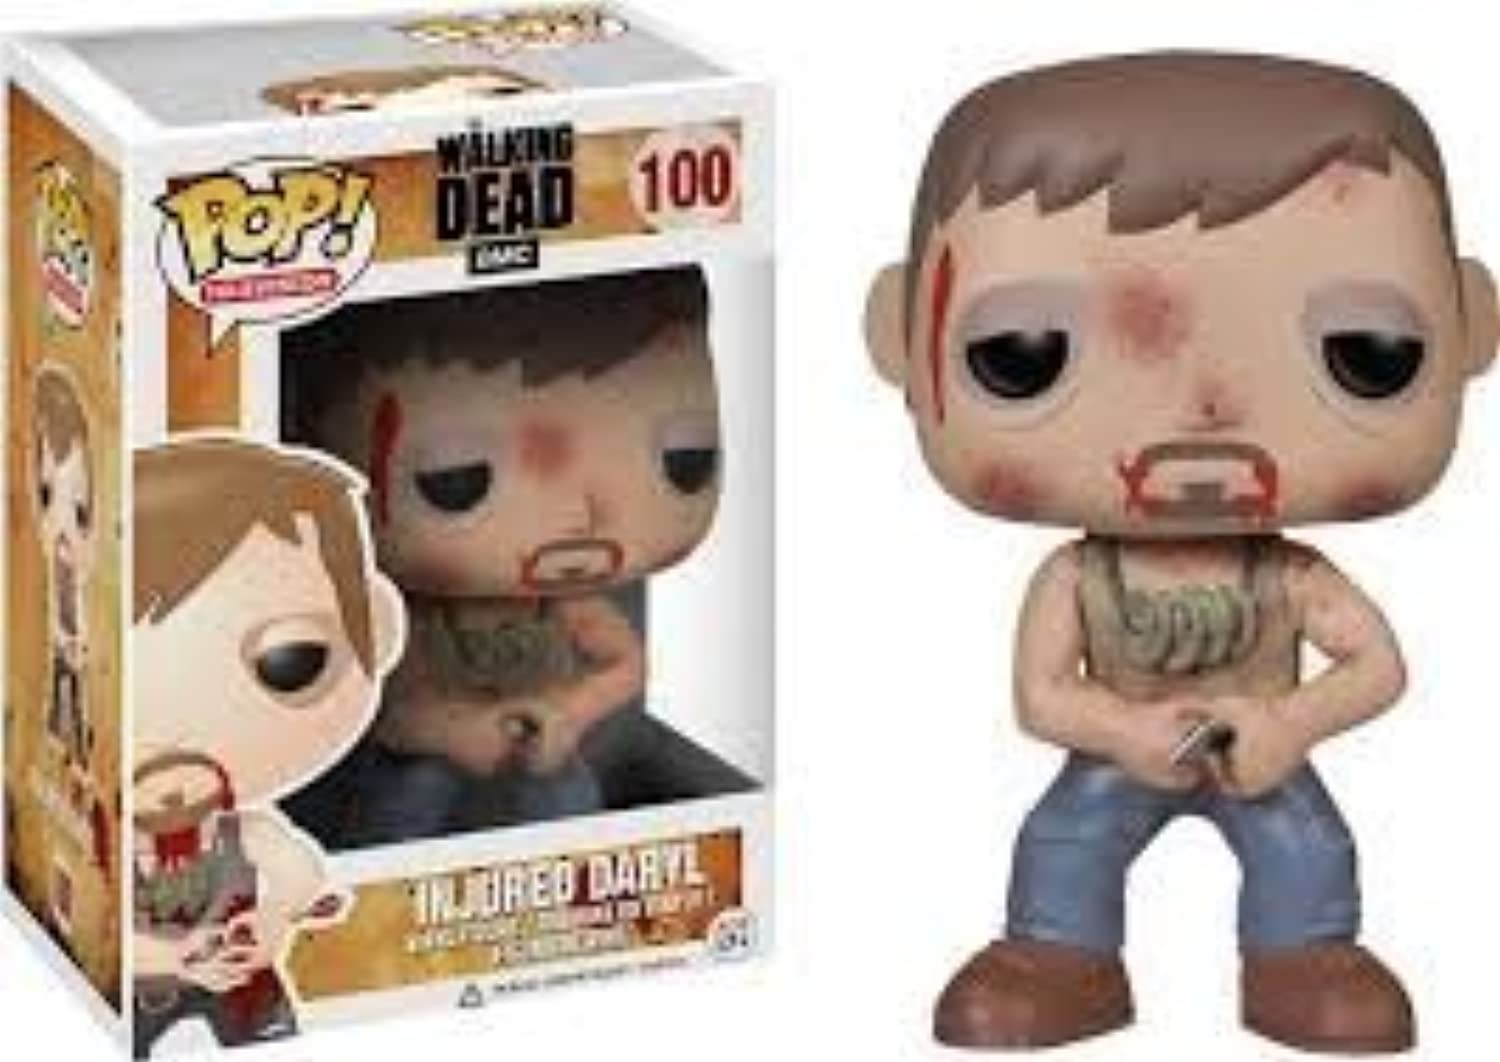 New the Walking Dead Injurot Daryl Dixon Pop  Vinyl Figure Toy Action by Funko